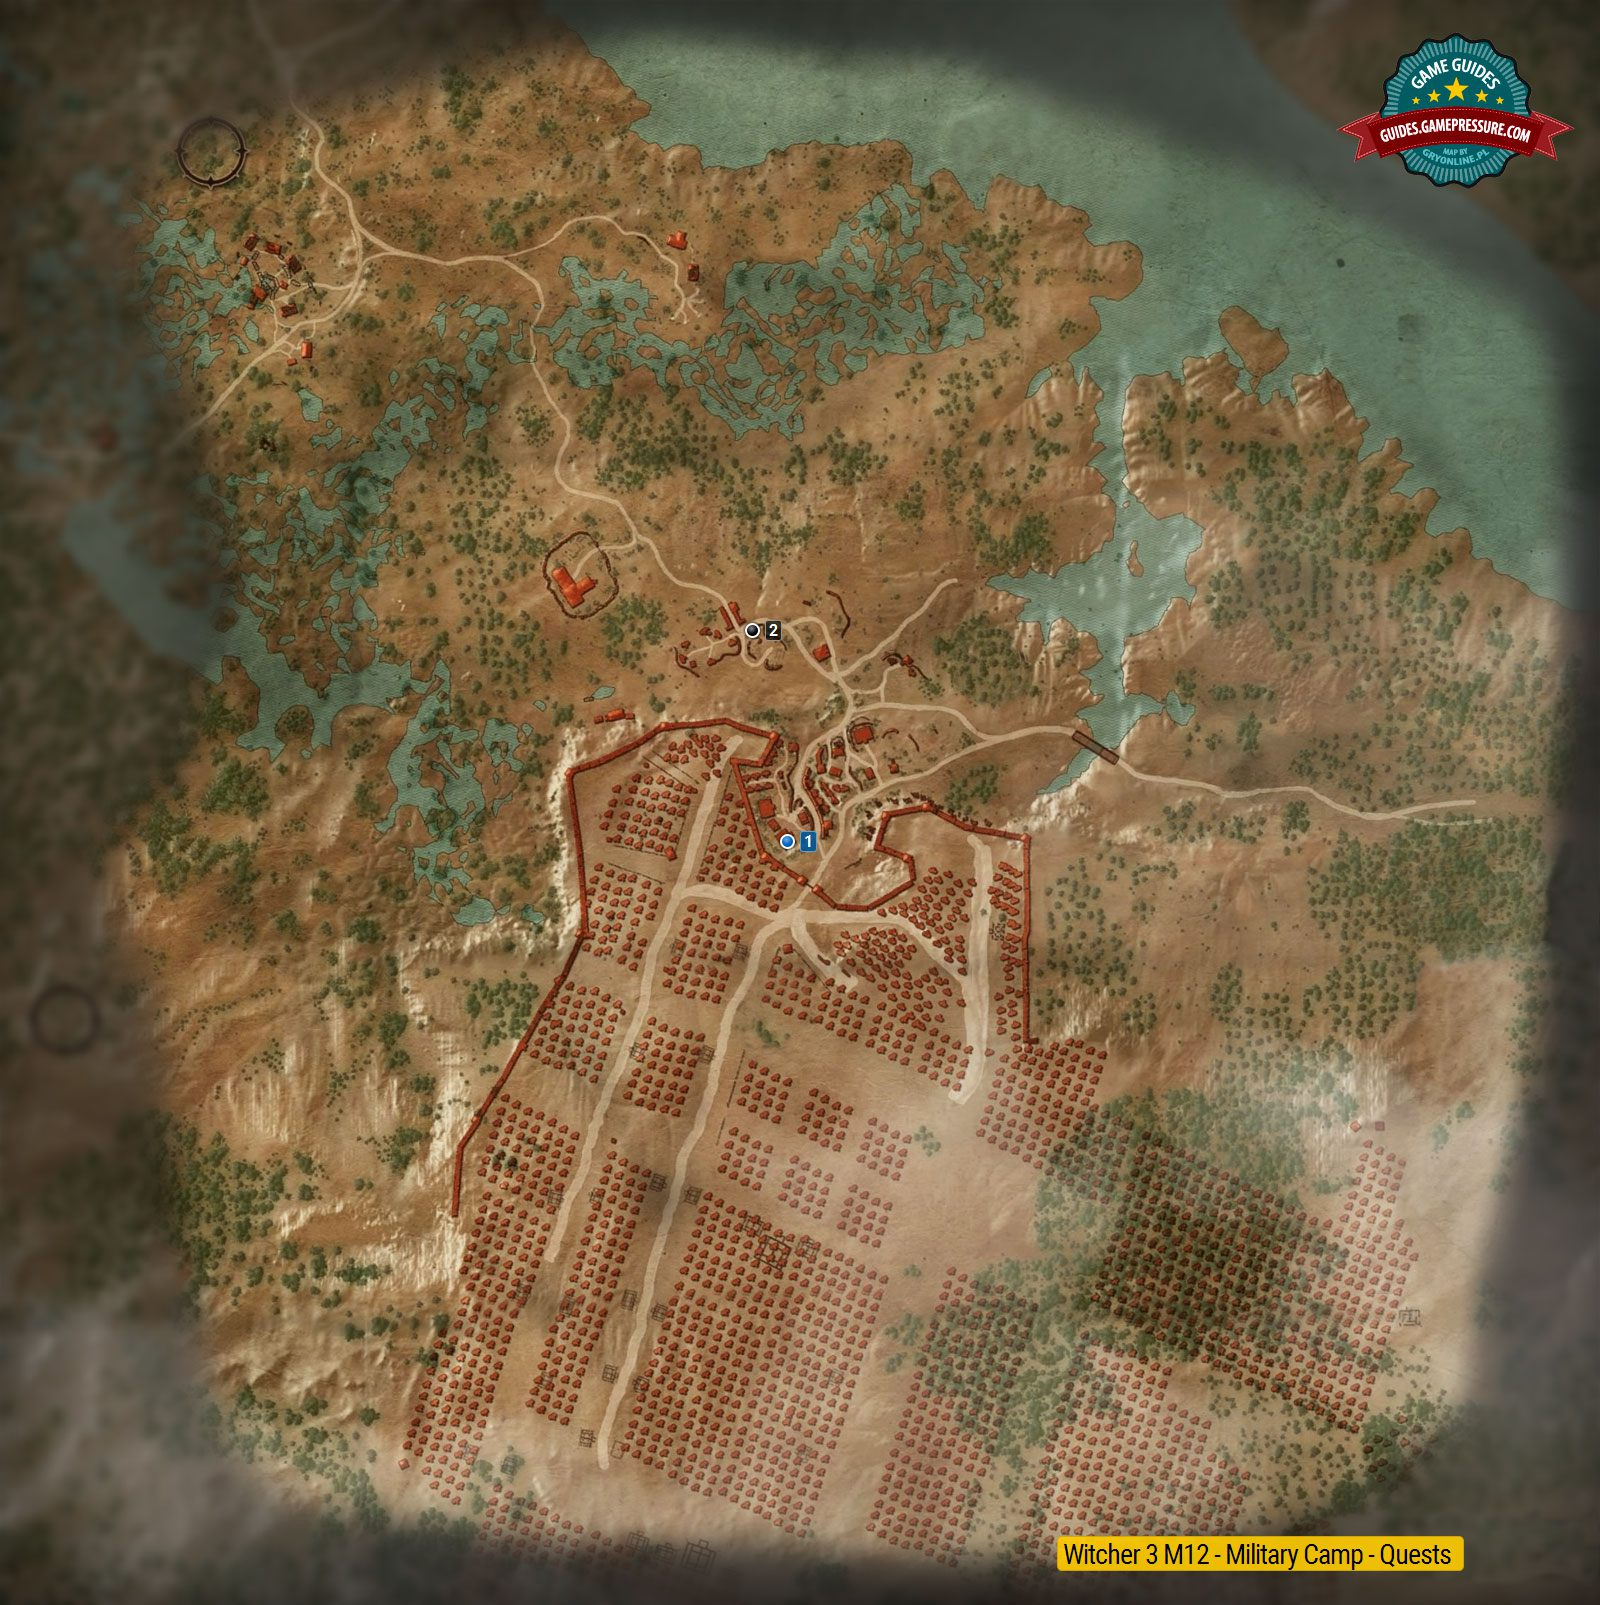 Witcher 3 M12 - Military Camp - Quests